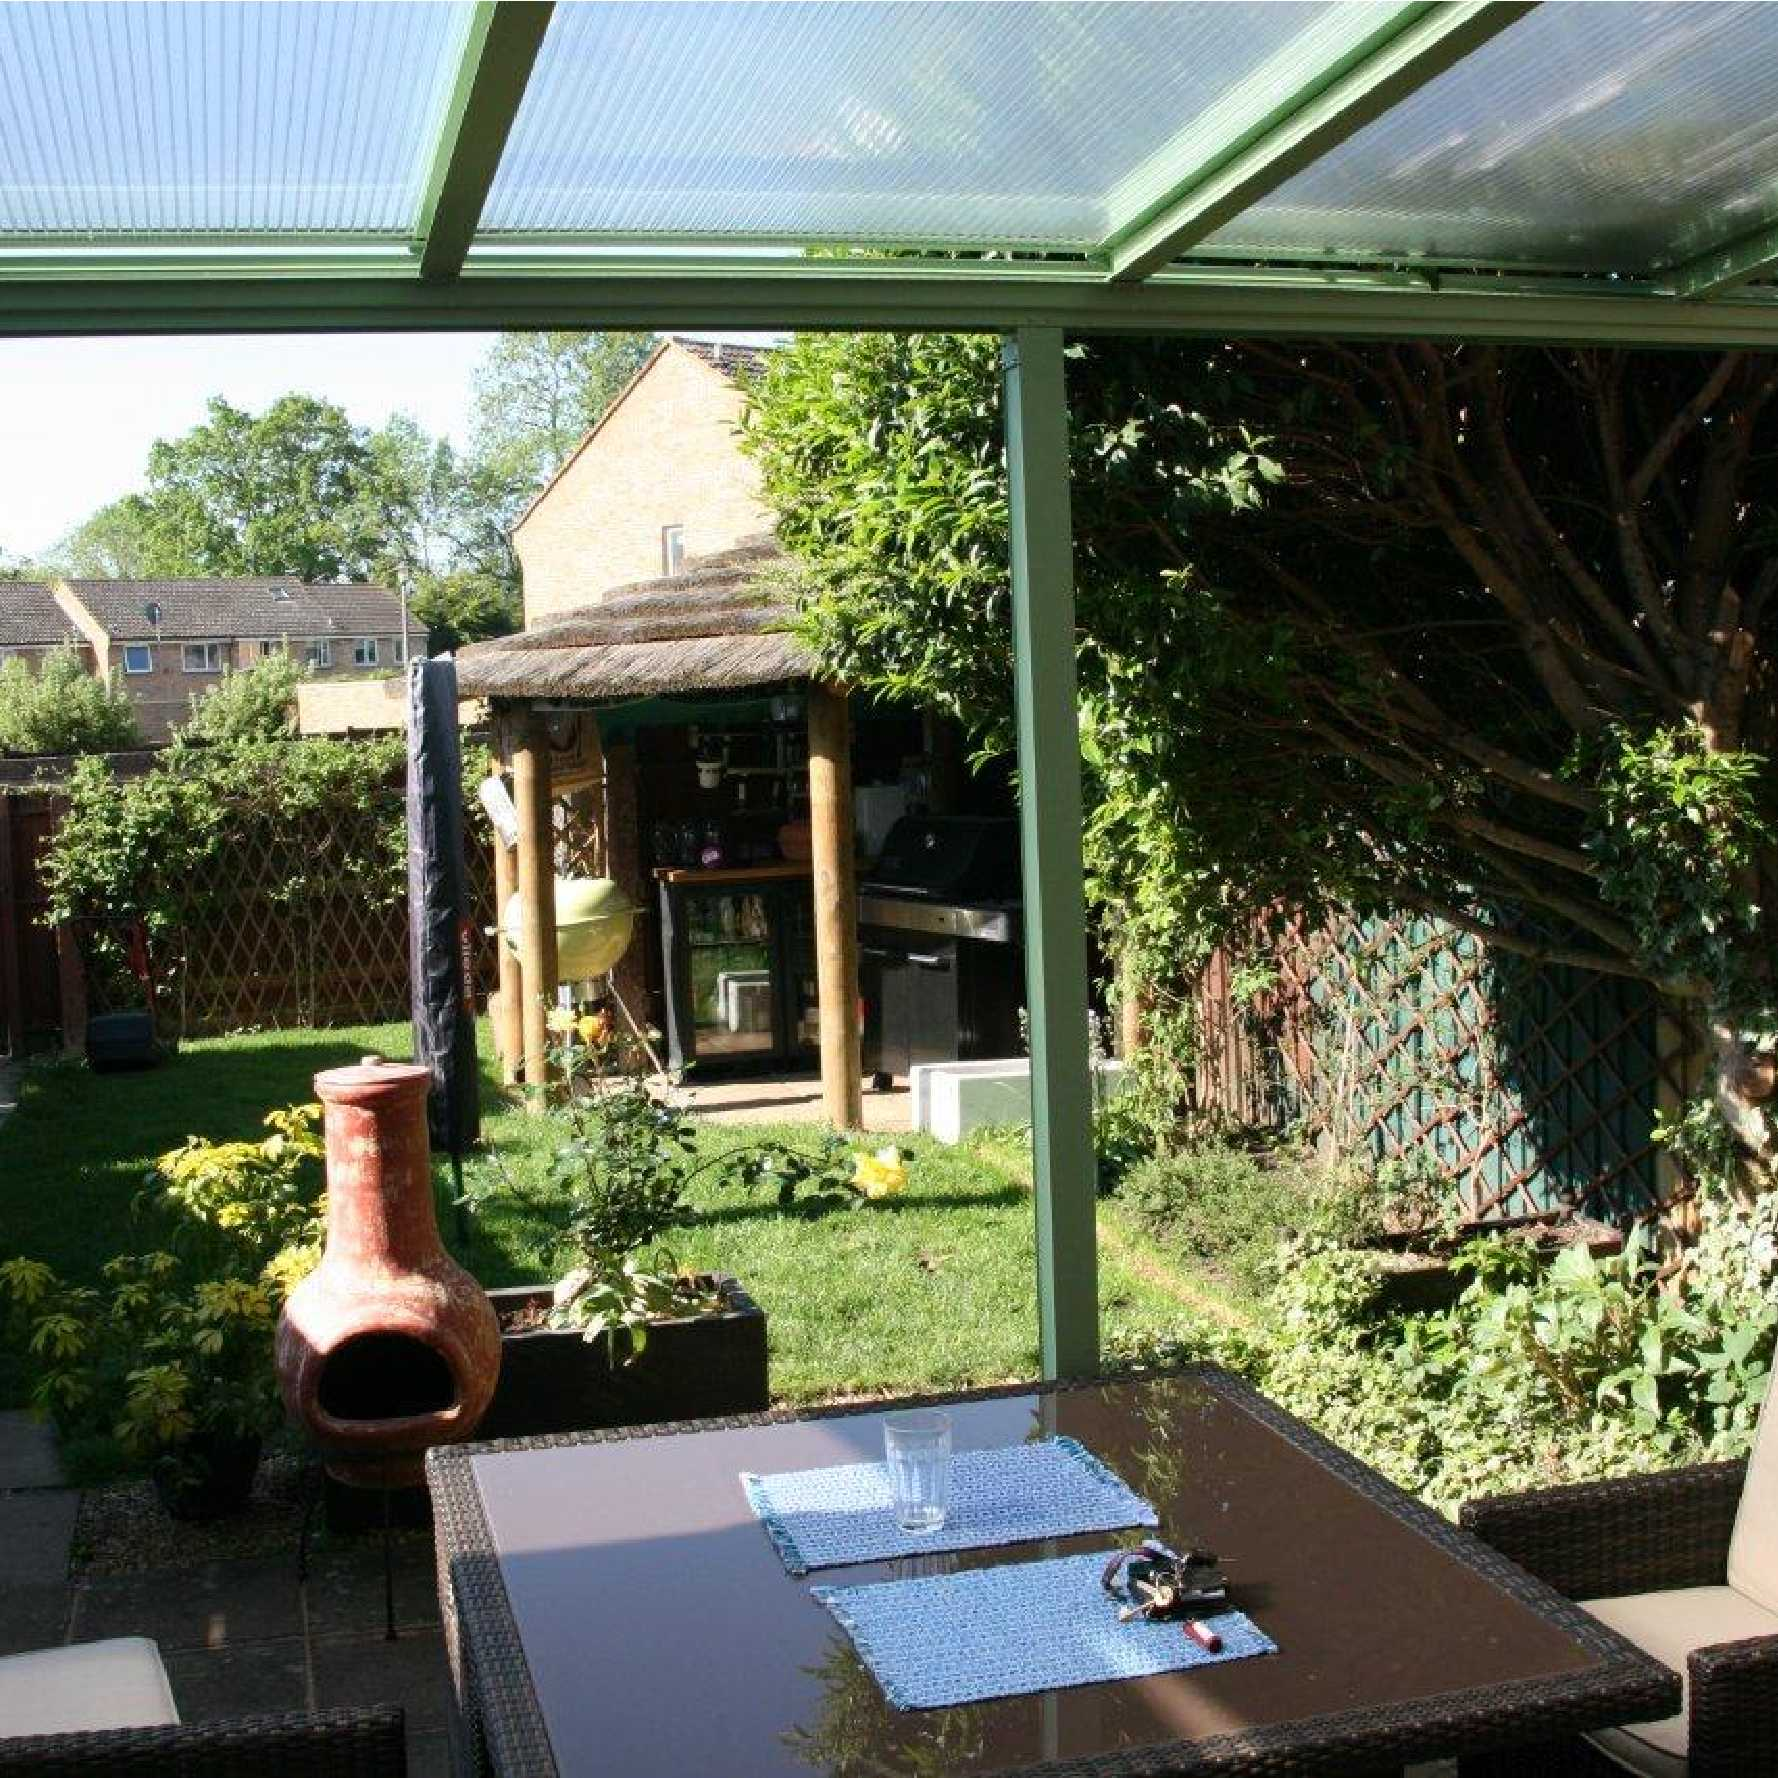 Affordable Omega Smart Lean-To Canopy with 16mm Polycarbonate Glazing - 10.6m (W) x 1.5m (P), (5) Supporting Posts